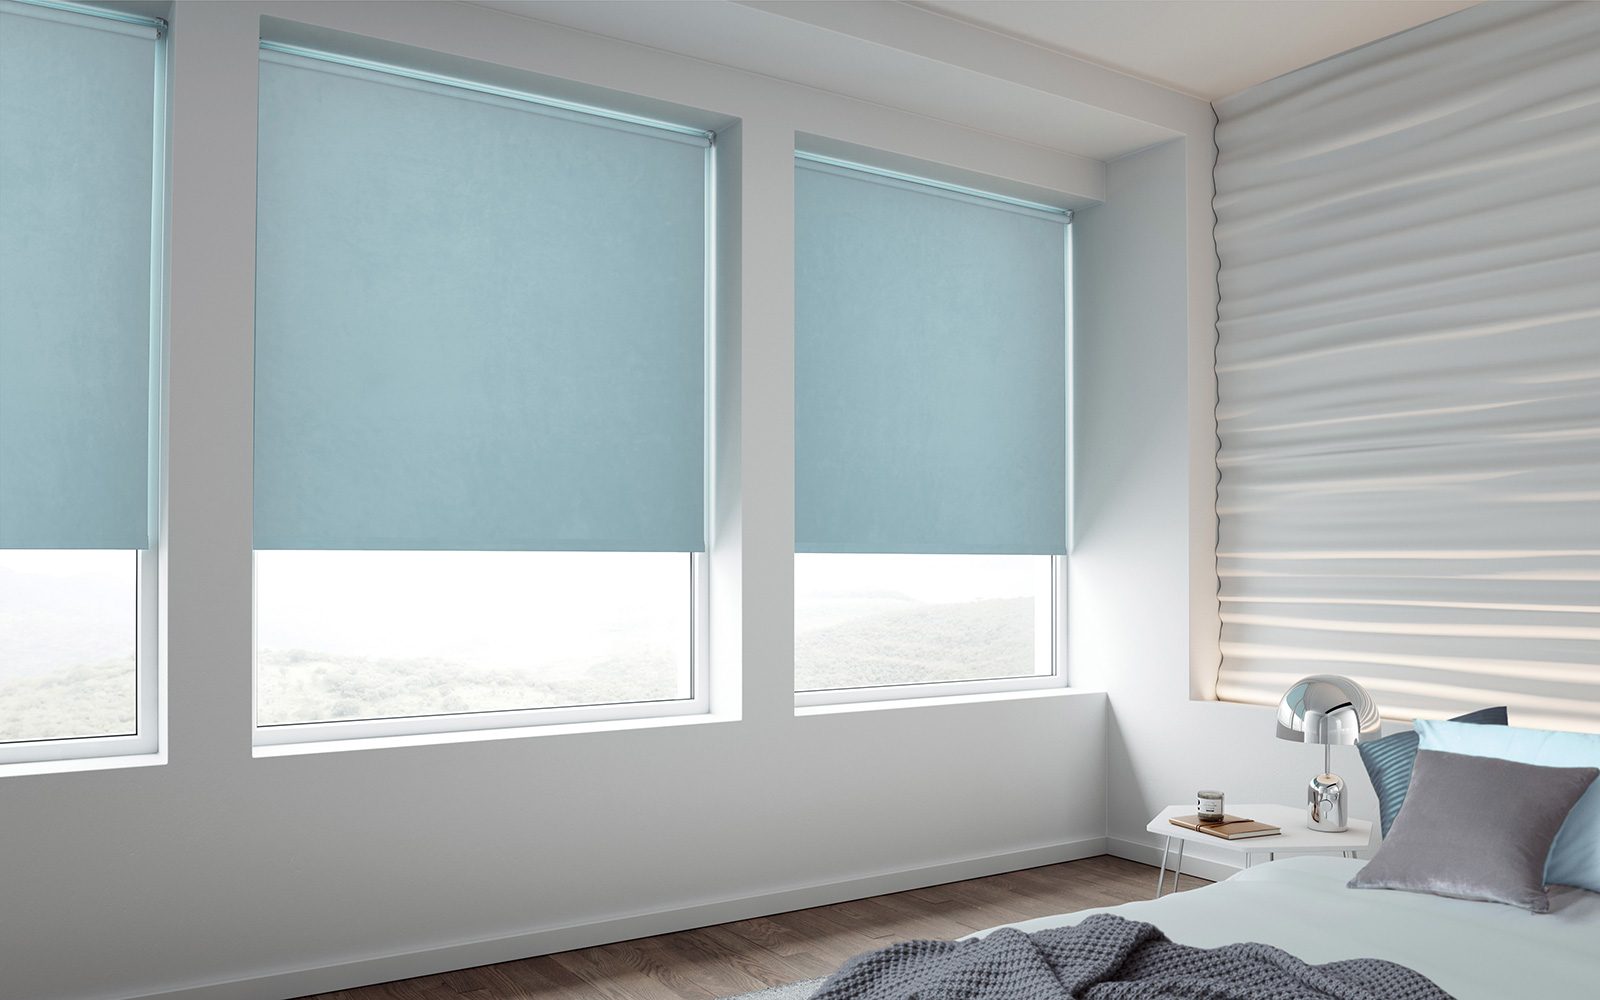 City Blinds | Roller Blinds | City Blinds